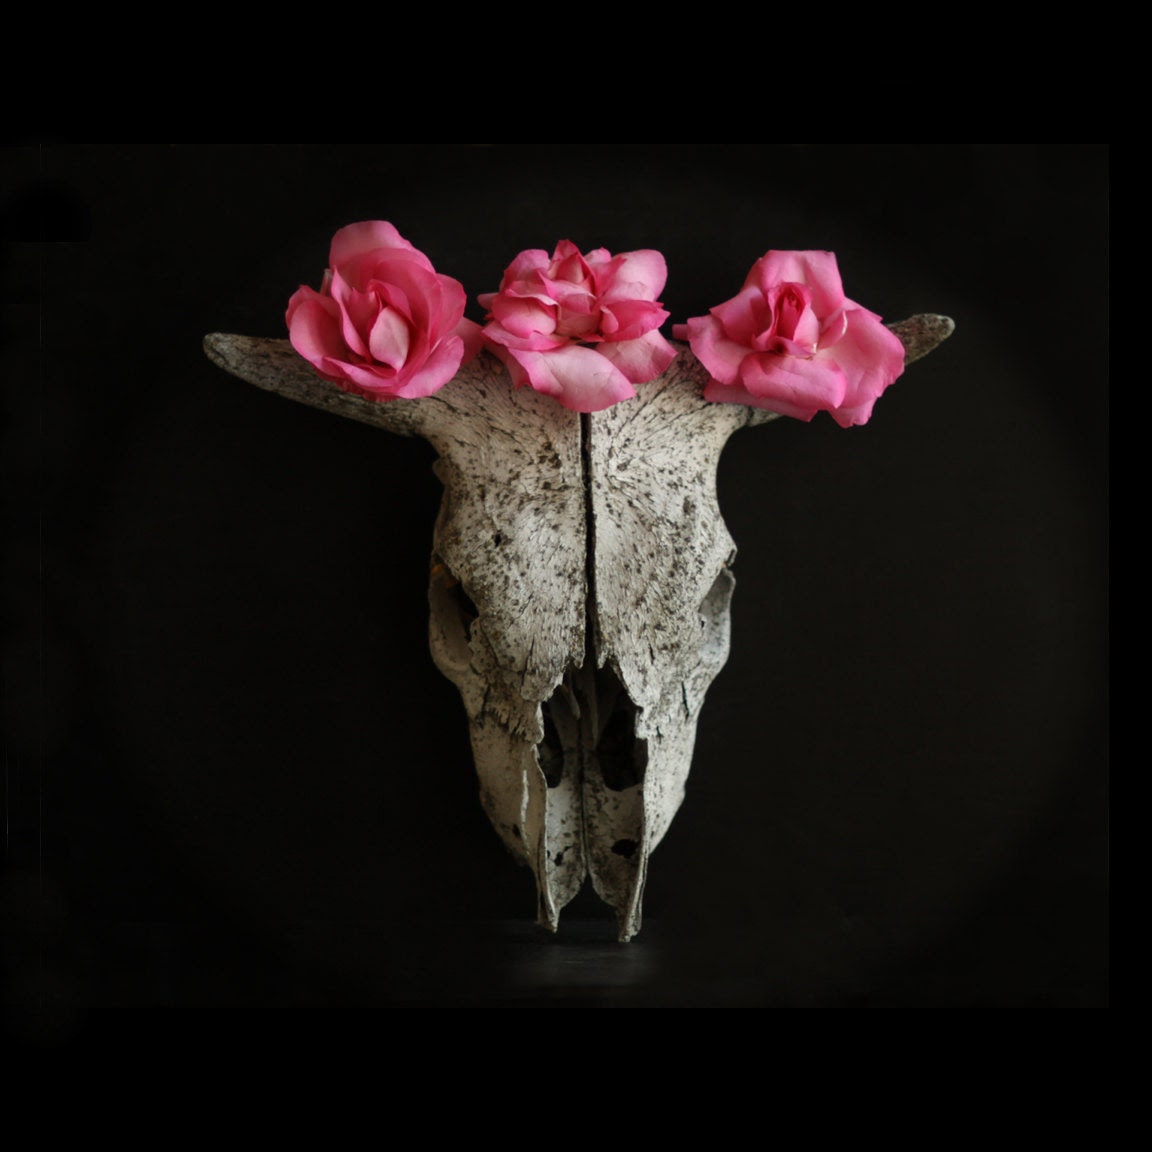 Flower Photography Still Life of a Cow Skull with Pink and Ivory Roses